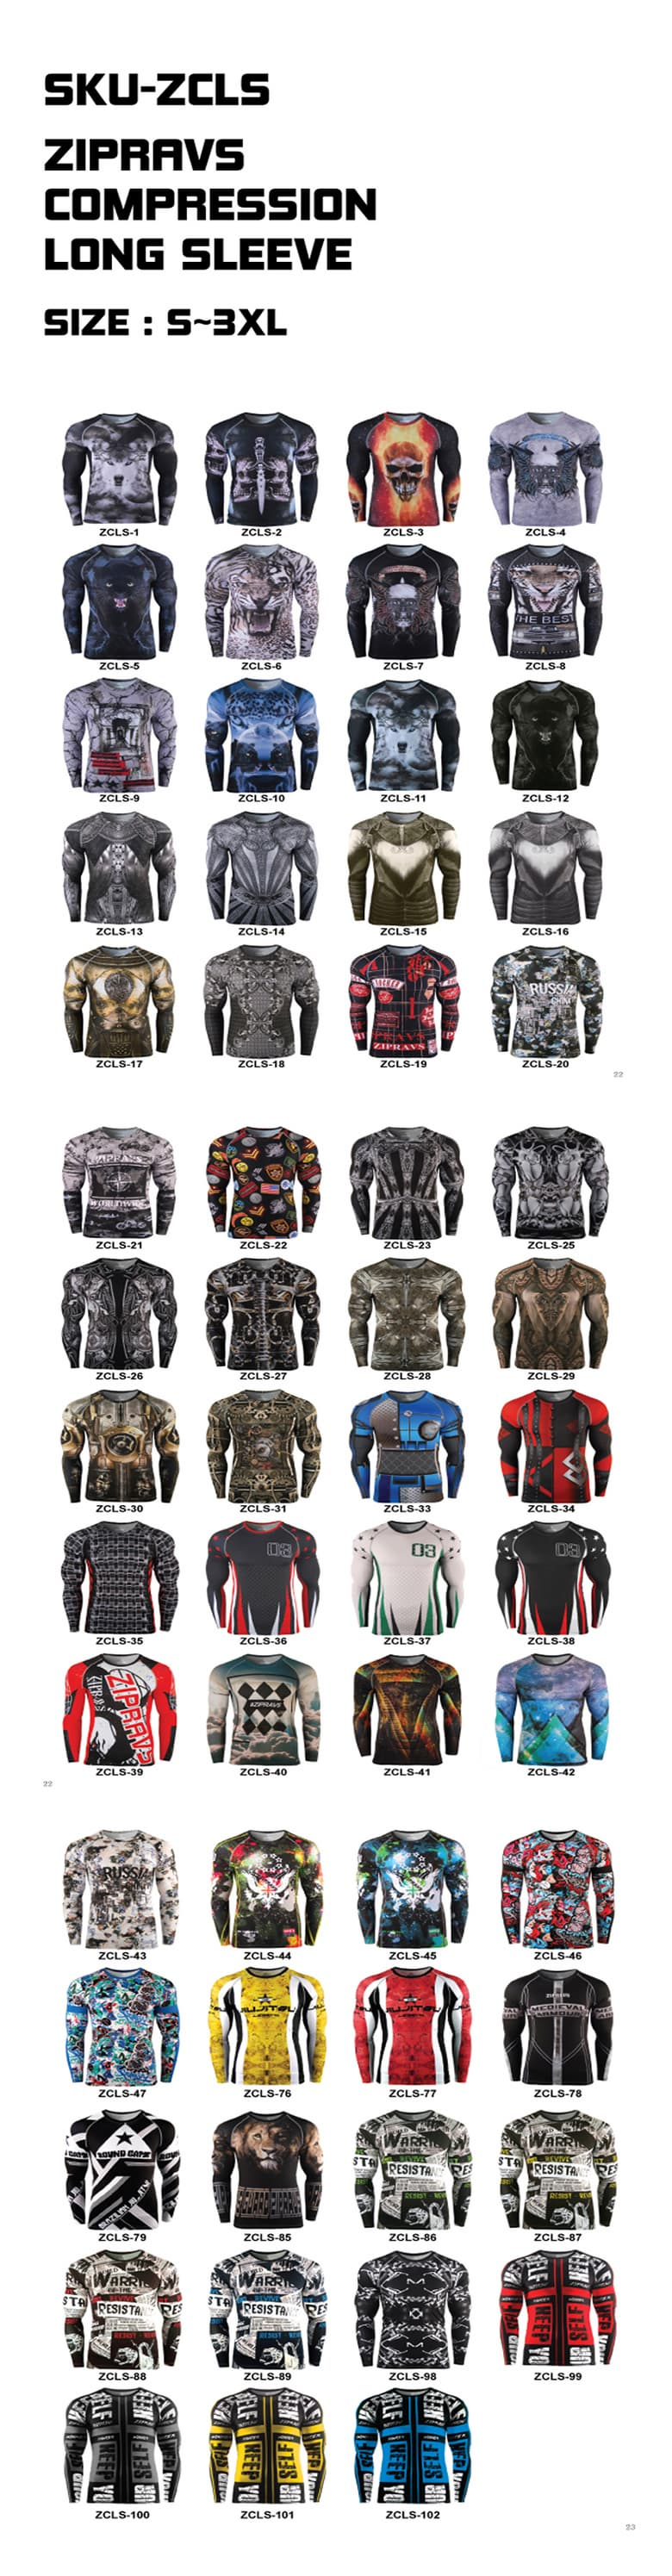 Rashguards Compression MMA BJJ Long Sleeve T Shirts